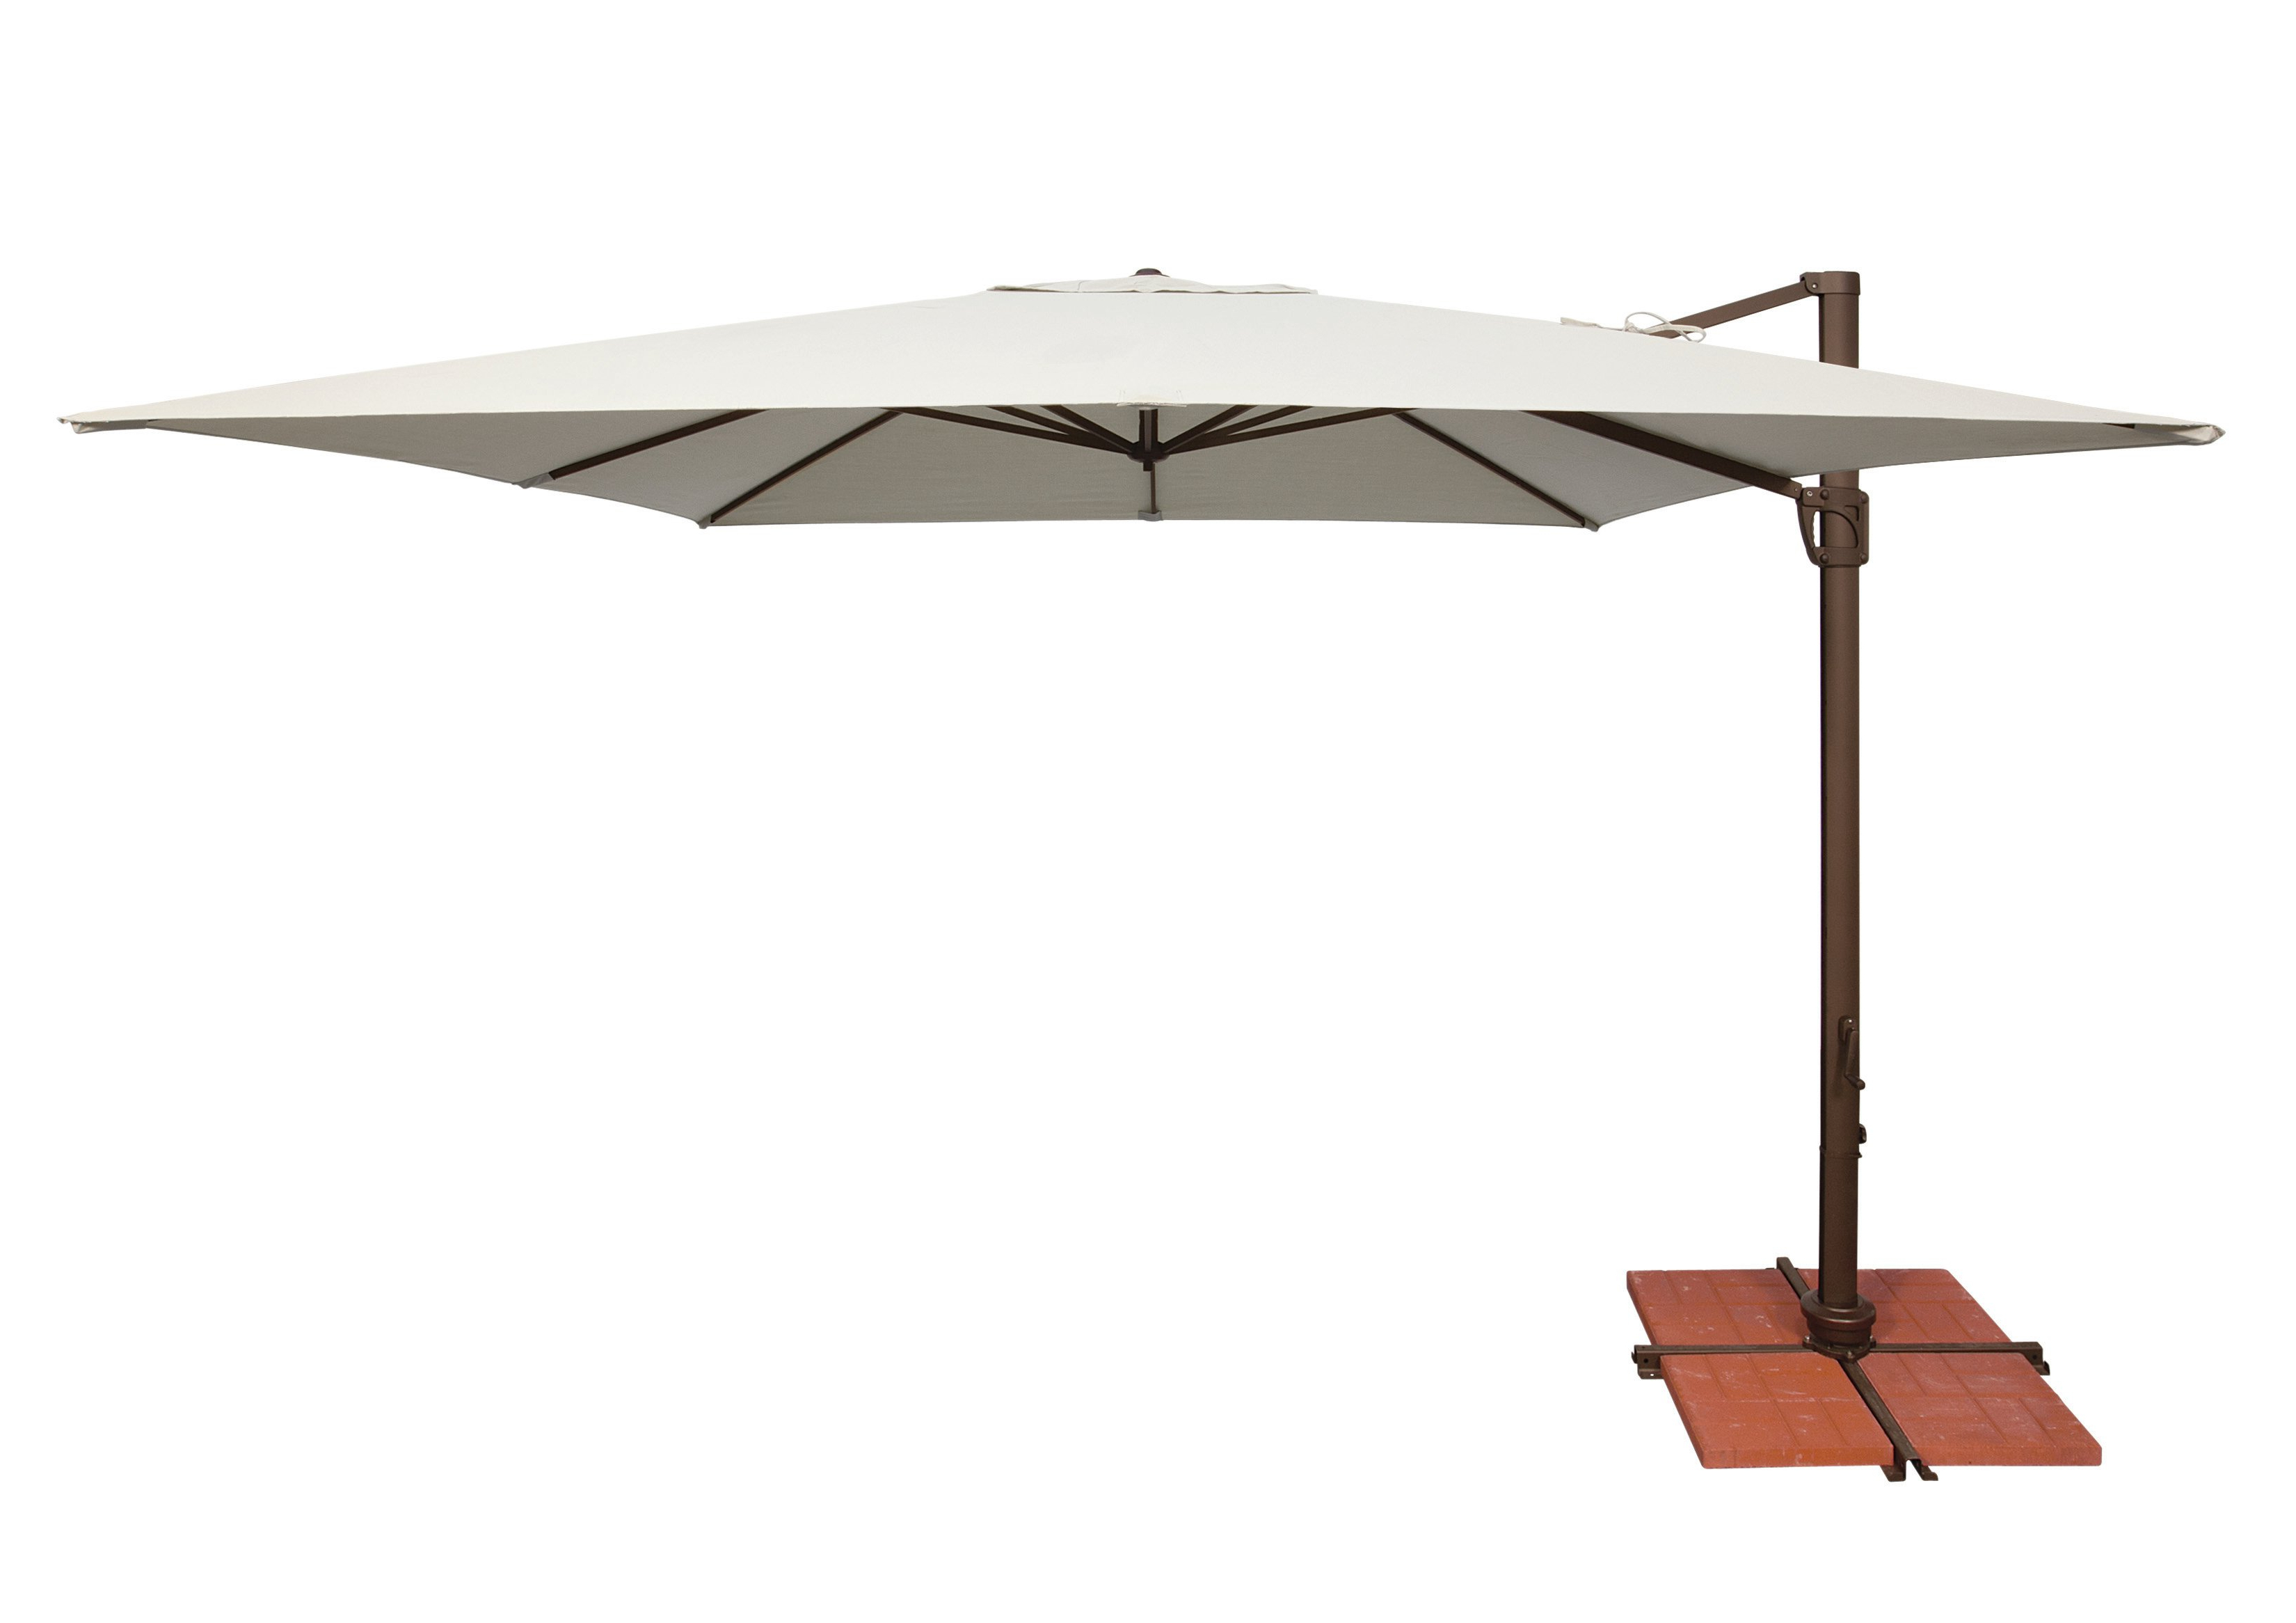 Windell 10' Square Cantilever Umbrella Inside Widely Used Spitler Square Cantilever Umbrellas (View 11 of 20)